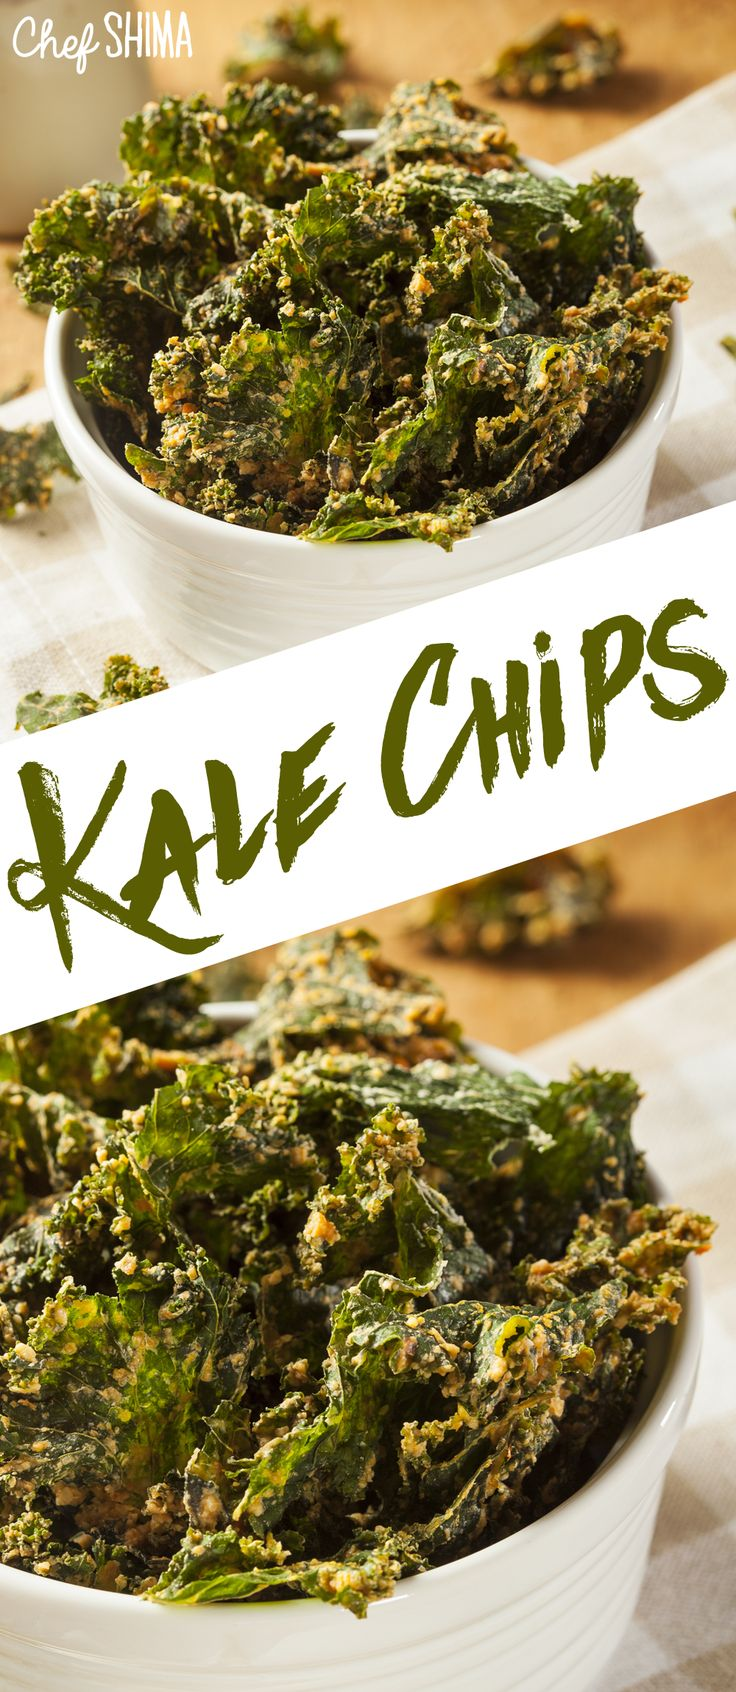 Green Kale Chips | Love this! Super healthy too.